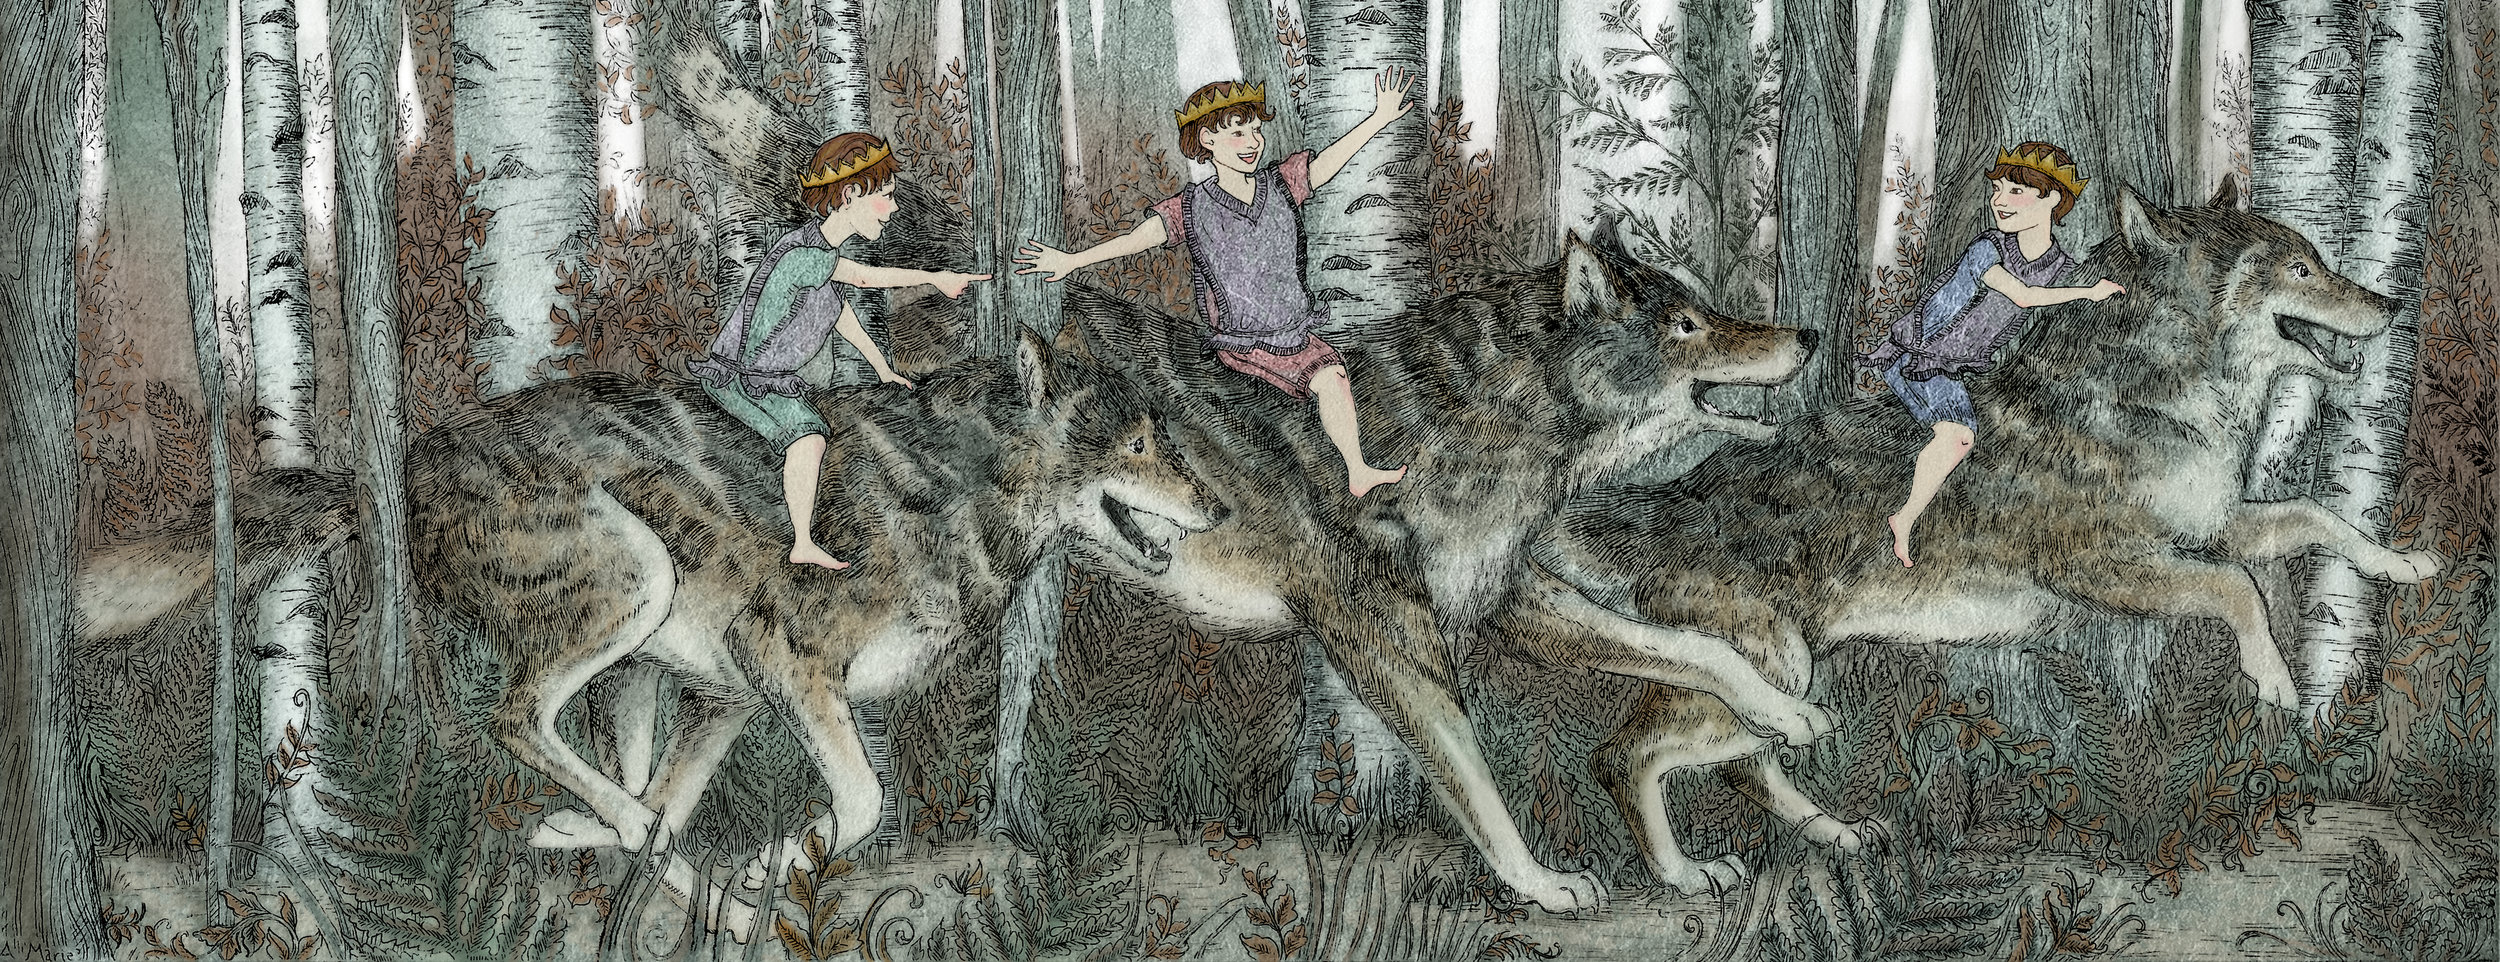 WolfPrinces.jpg